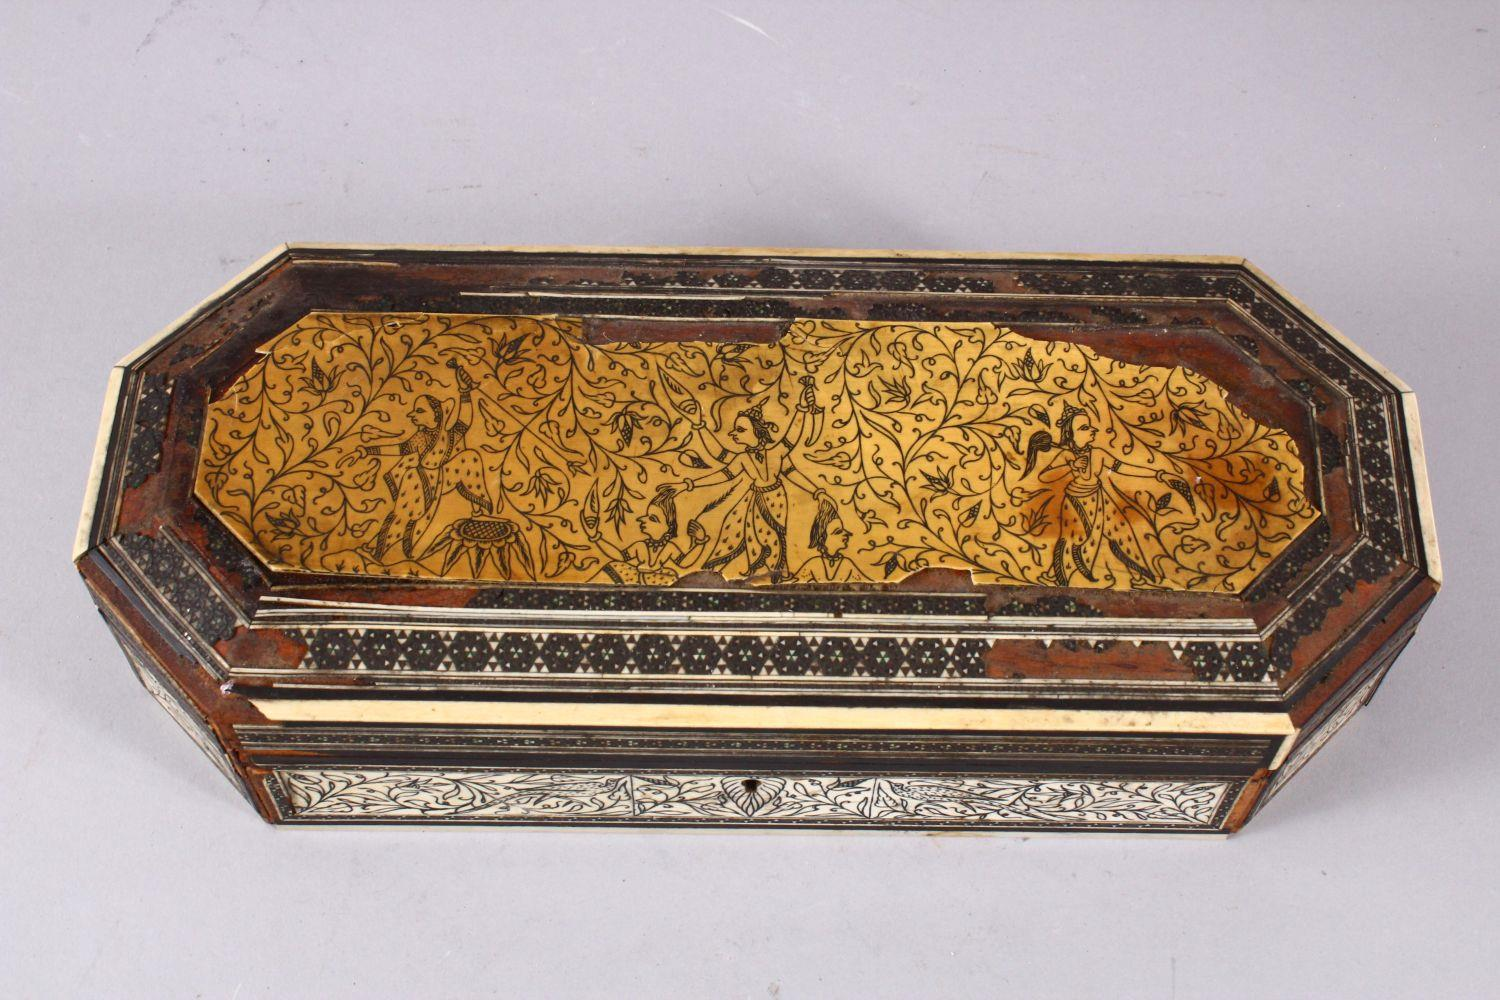 AN 18TH CENTURY INDIAN GOA INLAID IVORY LIDDED BOX, the box with a top ivory inlaid slither carved - Image 2 of 4